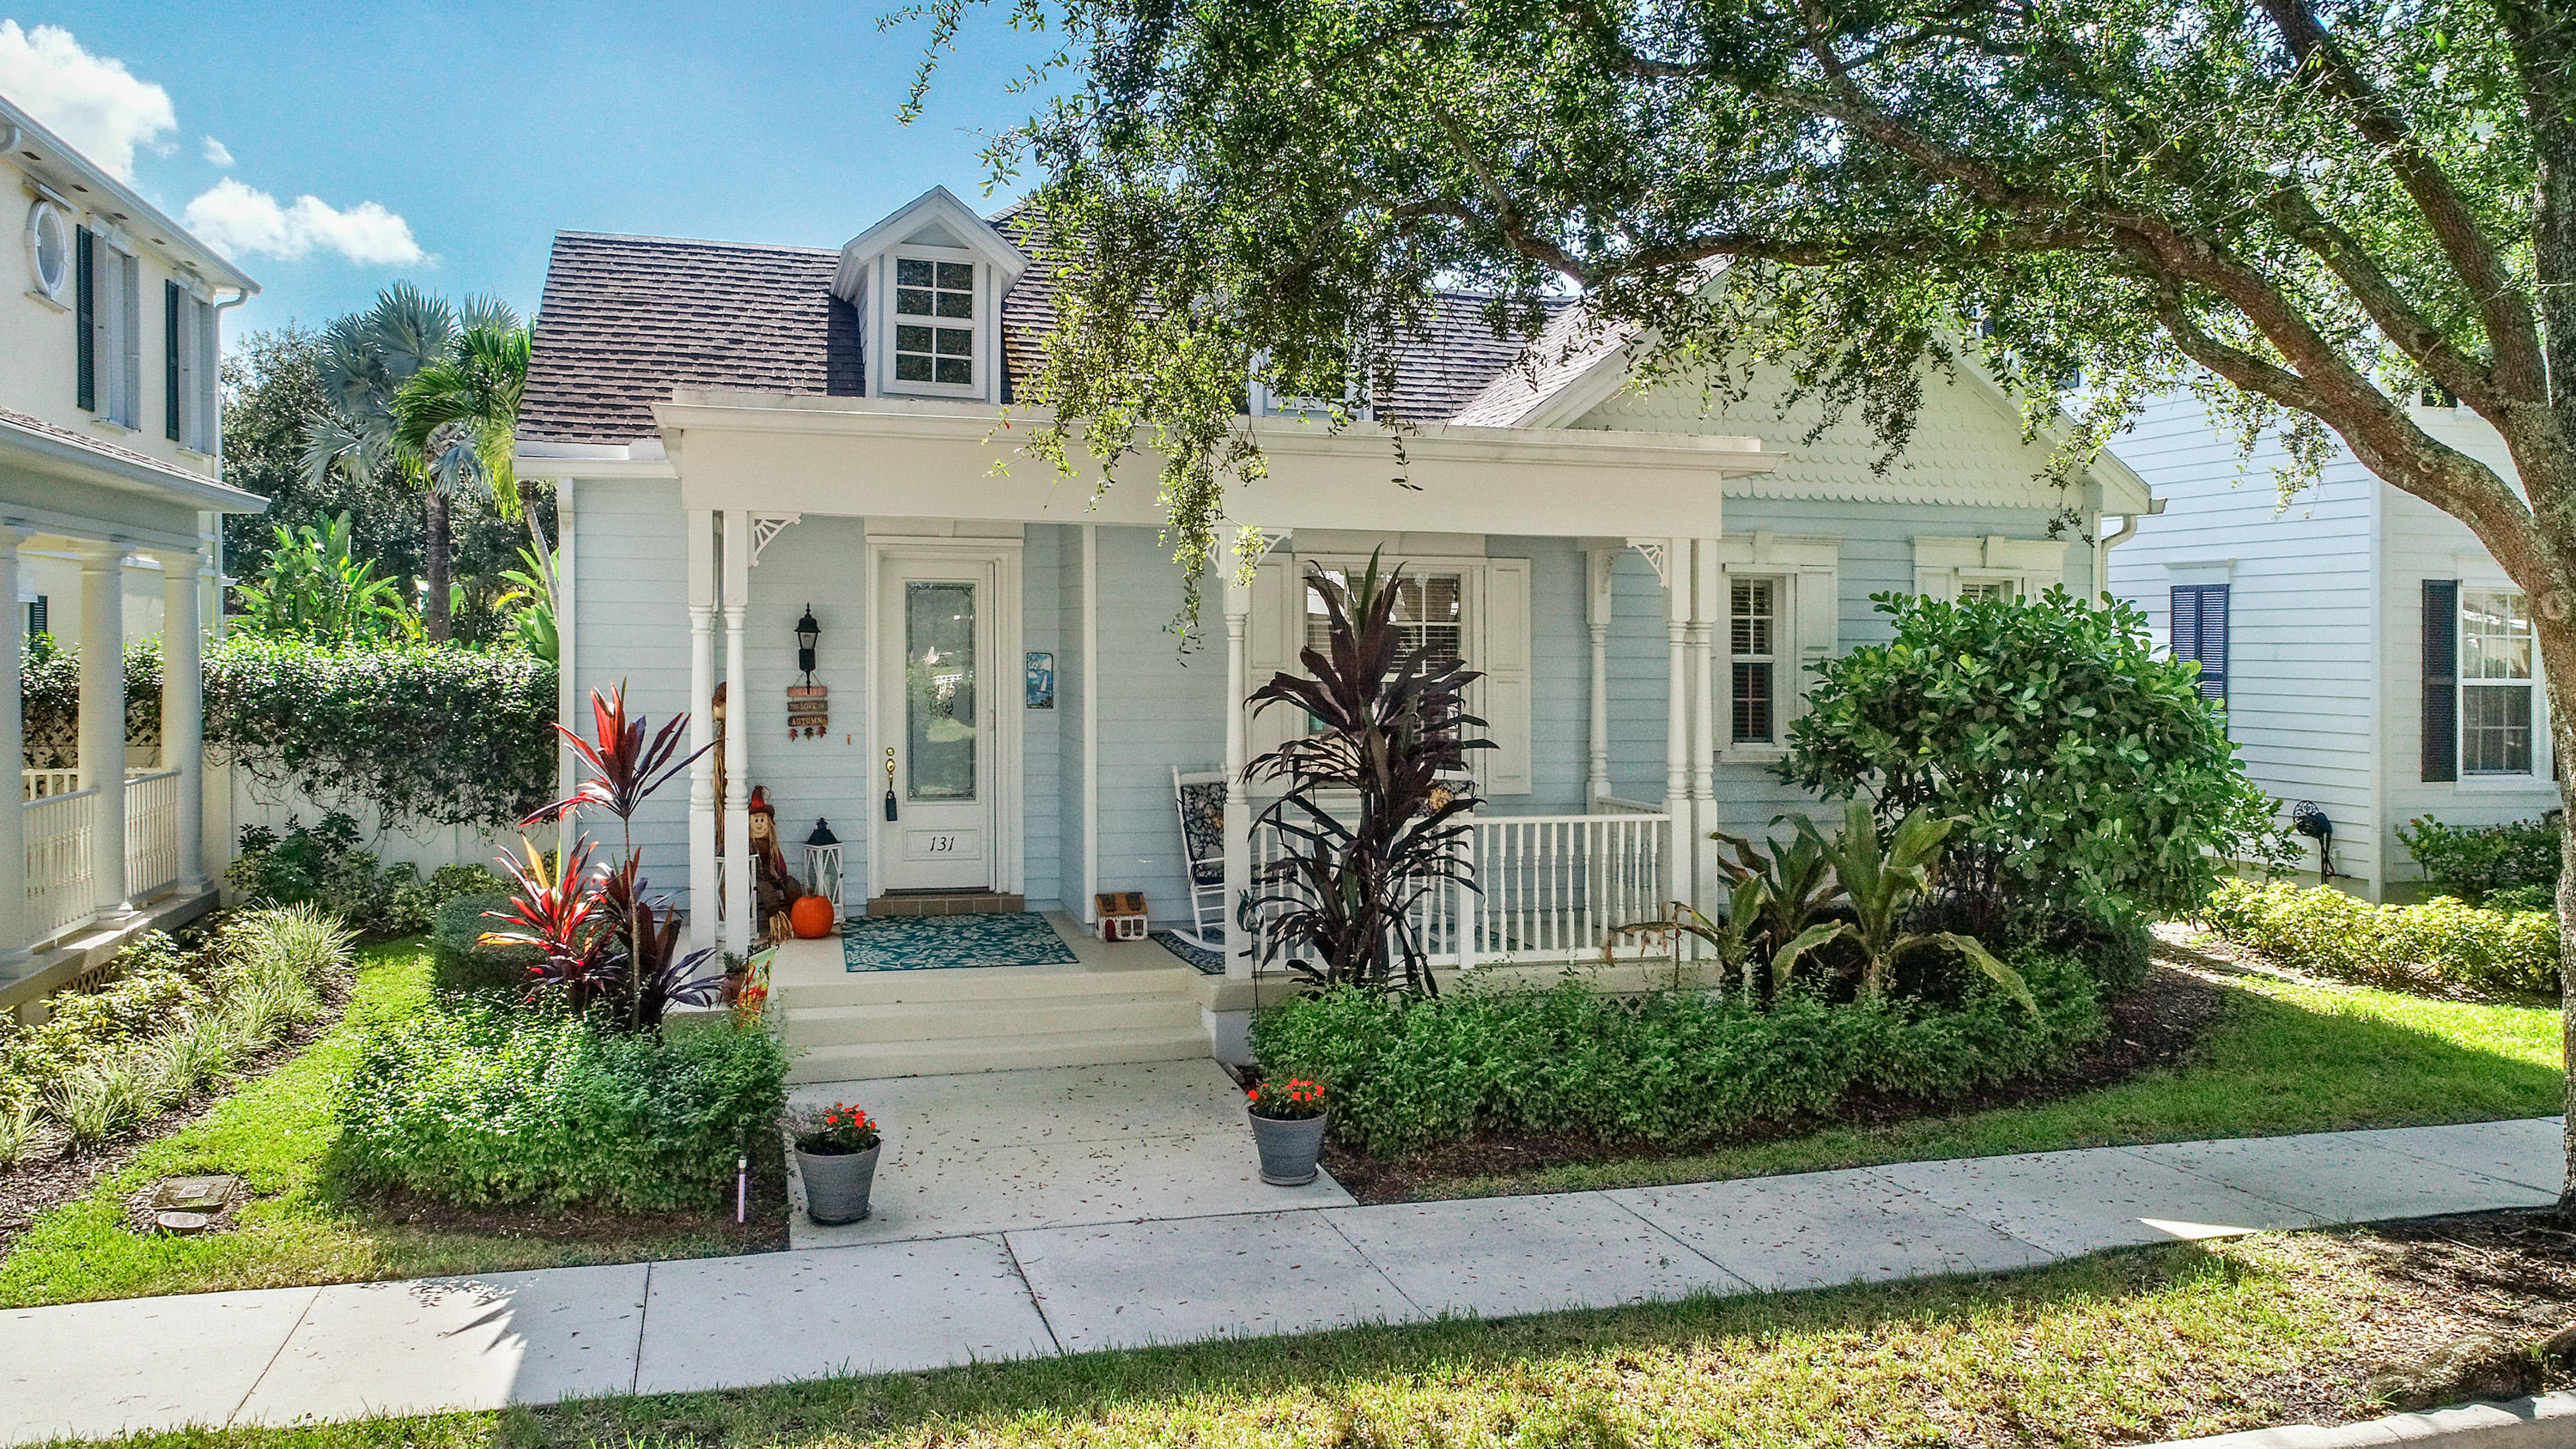 New Home for sale at 131 Barbados Drive in Jupiter